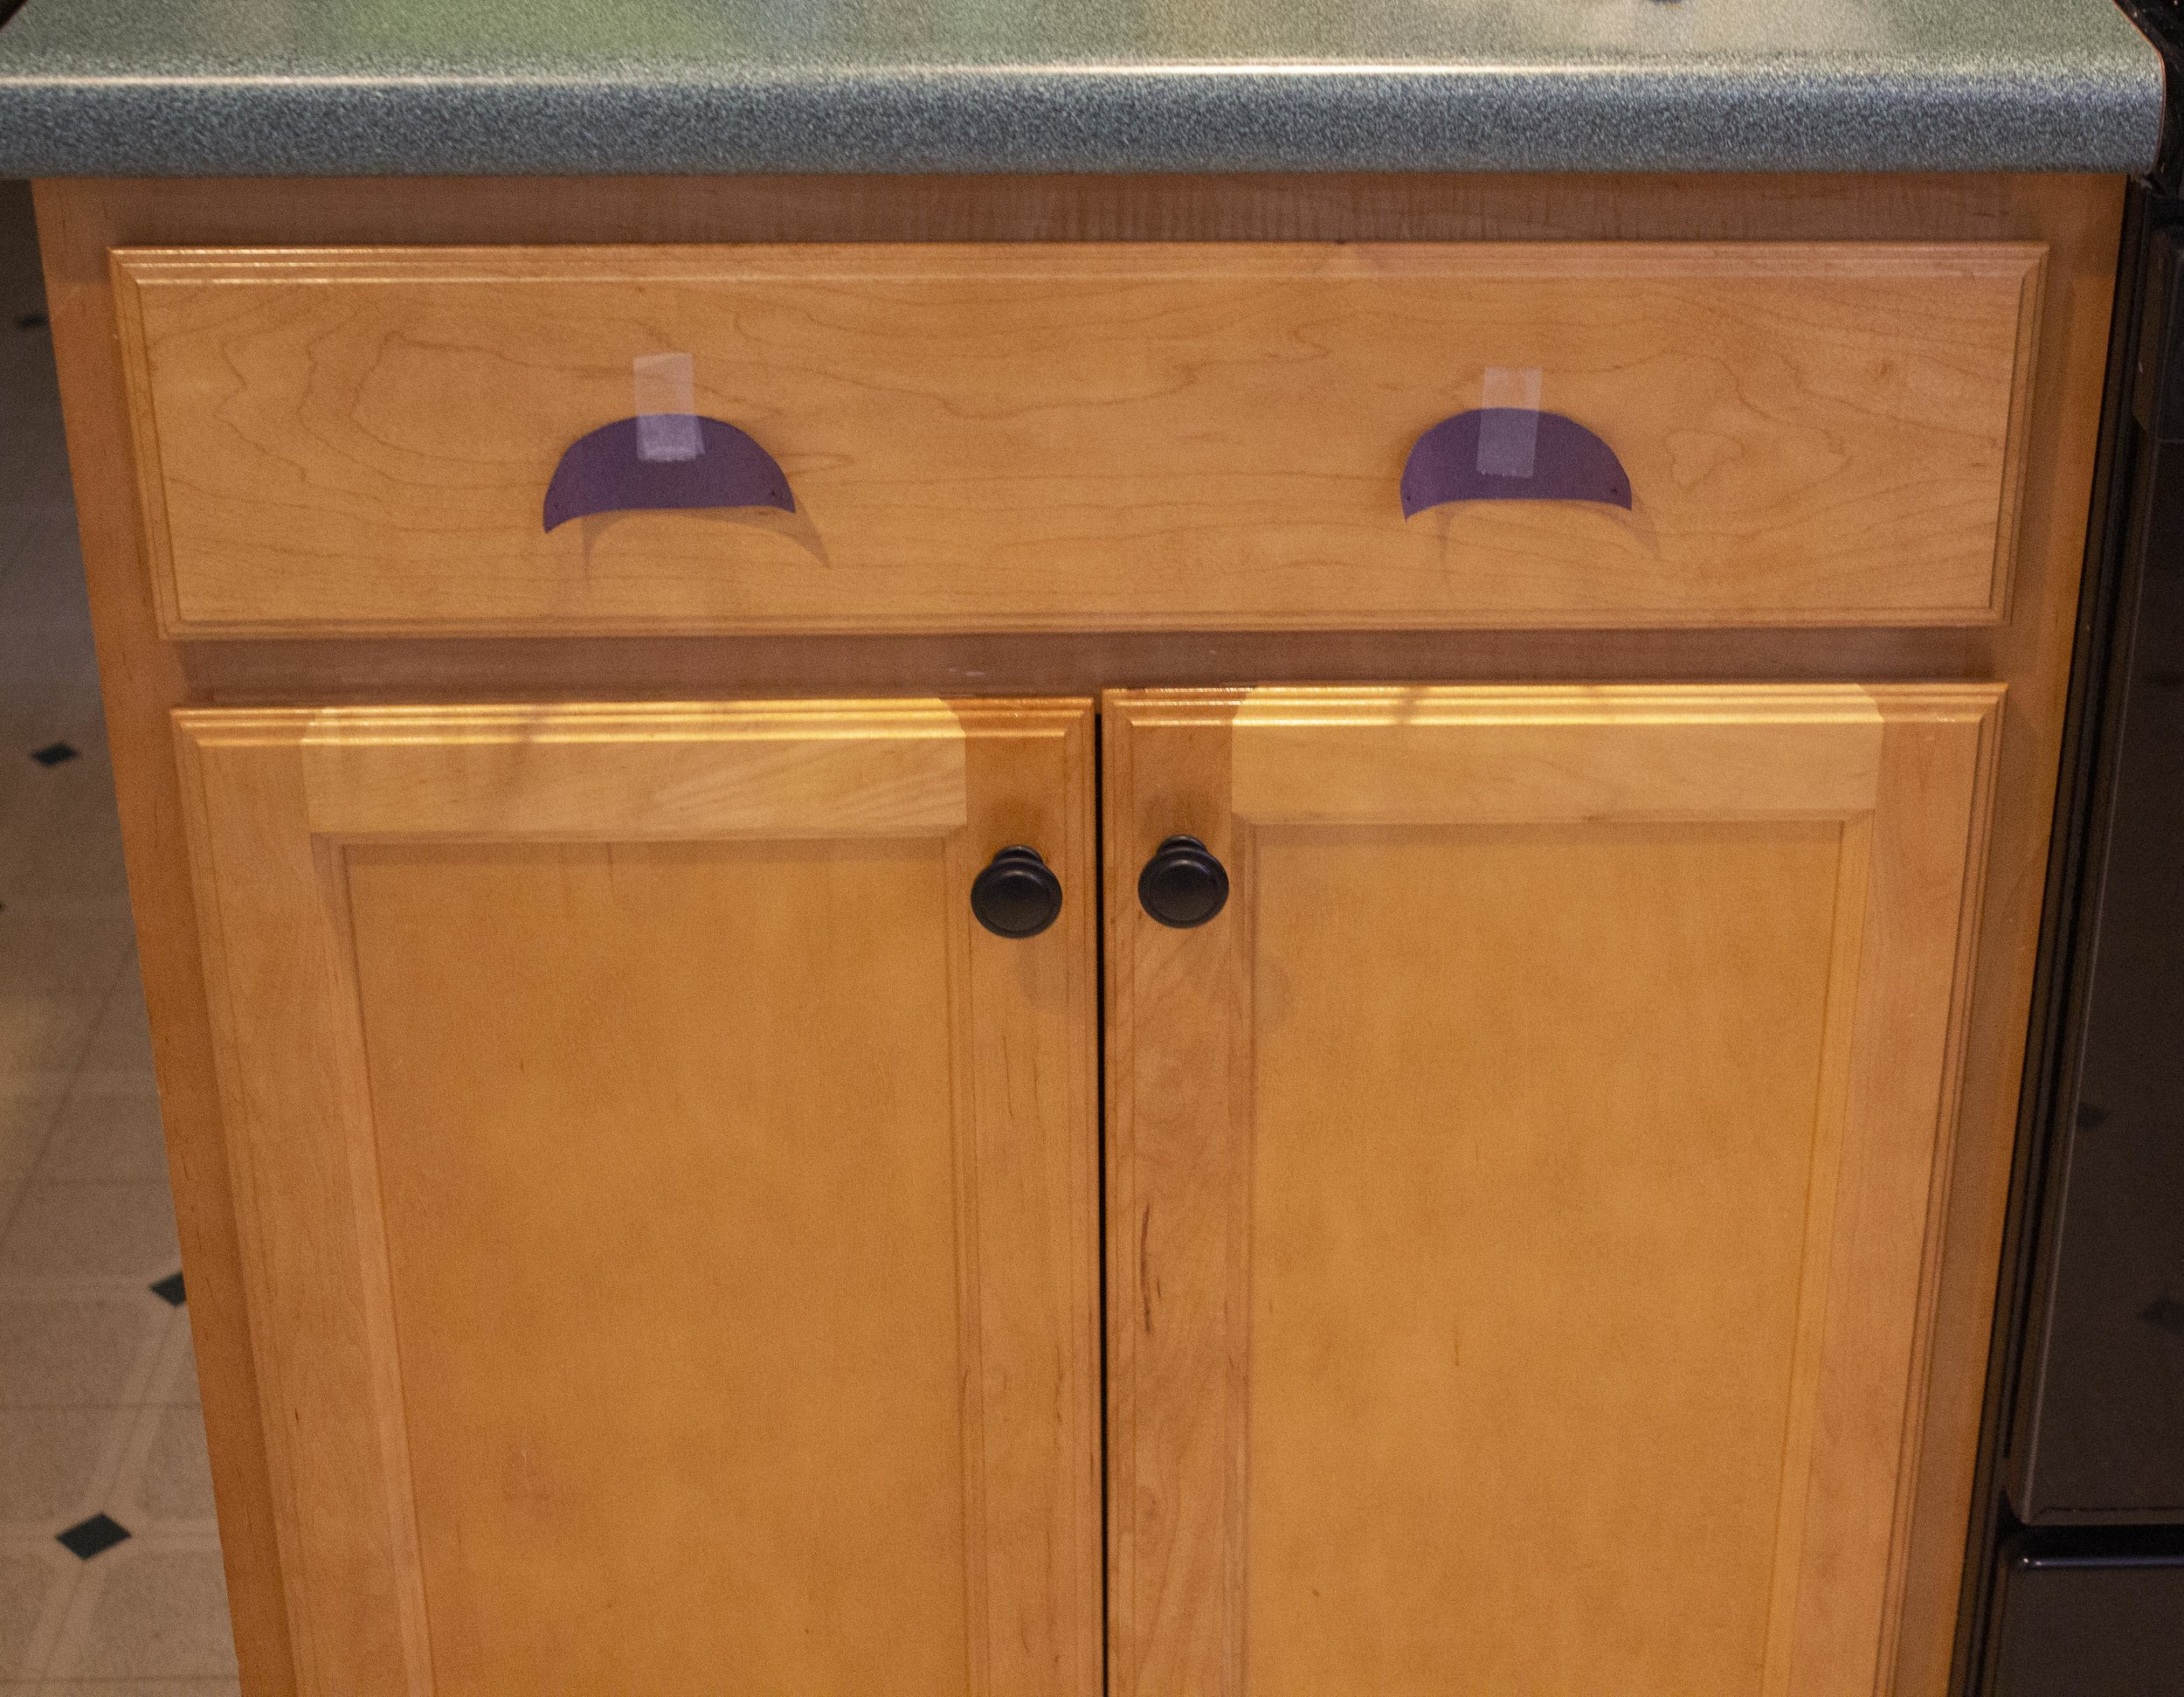 Deciding on drawer pull placement. (Note that while the lower cabinet knobs are each in the correct place, they look off since the cabinet doors are uneven - this can be fixed by adjusting the cabinet door hinges, which I did once I was finished installing all the hardware.)